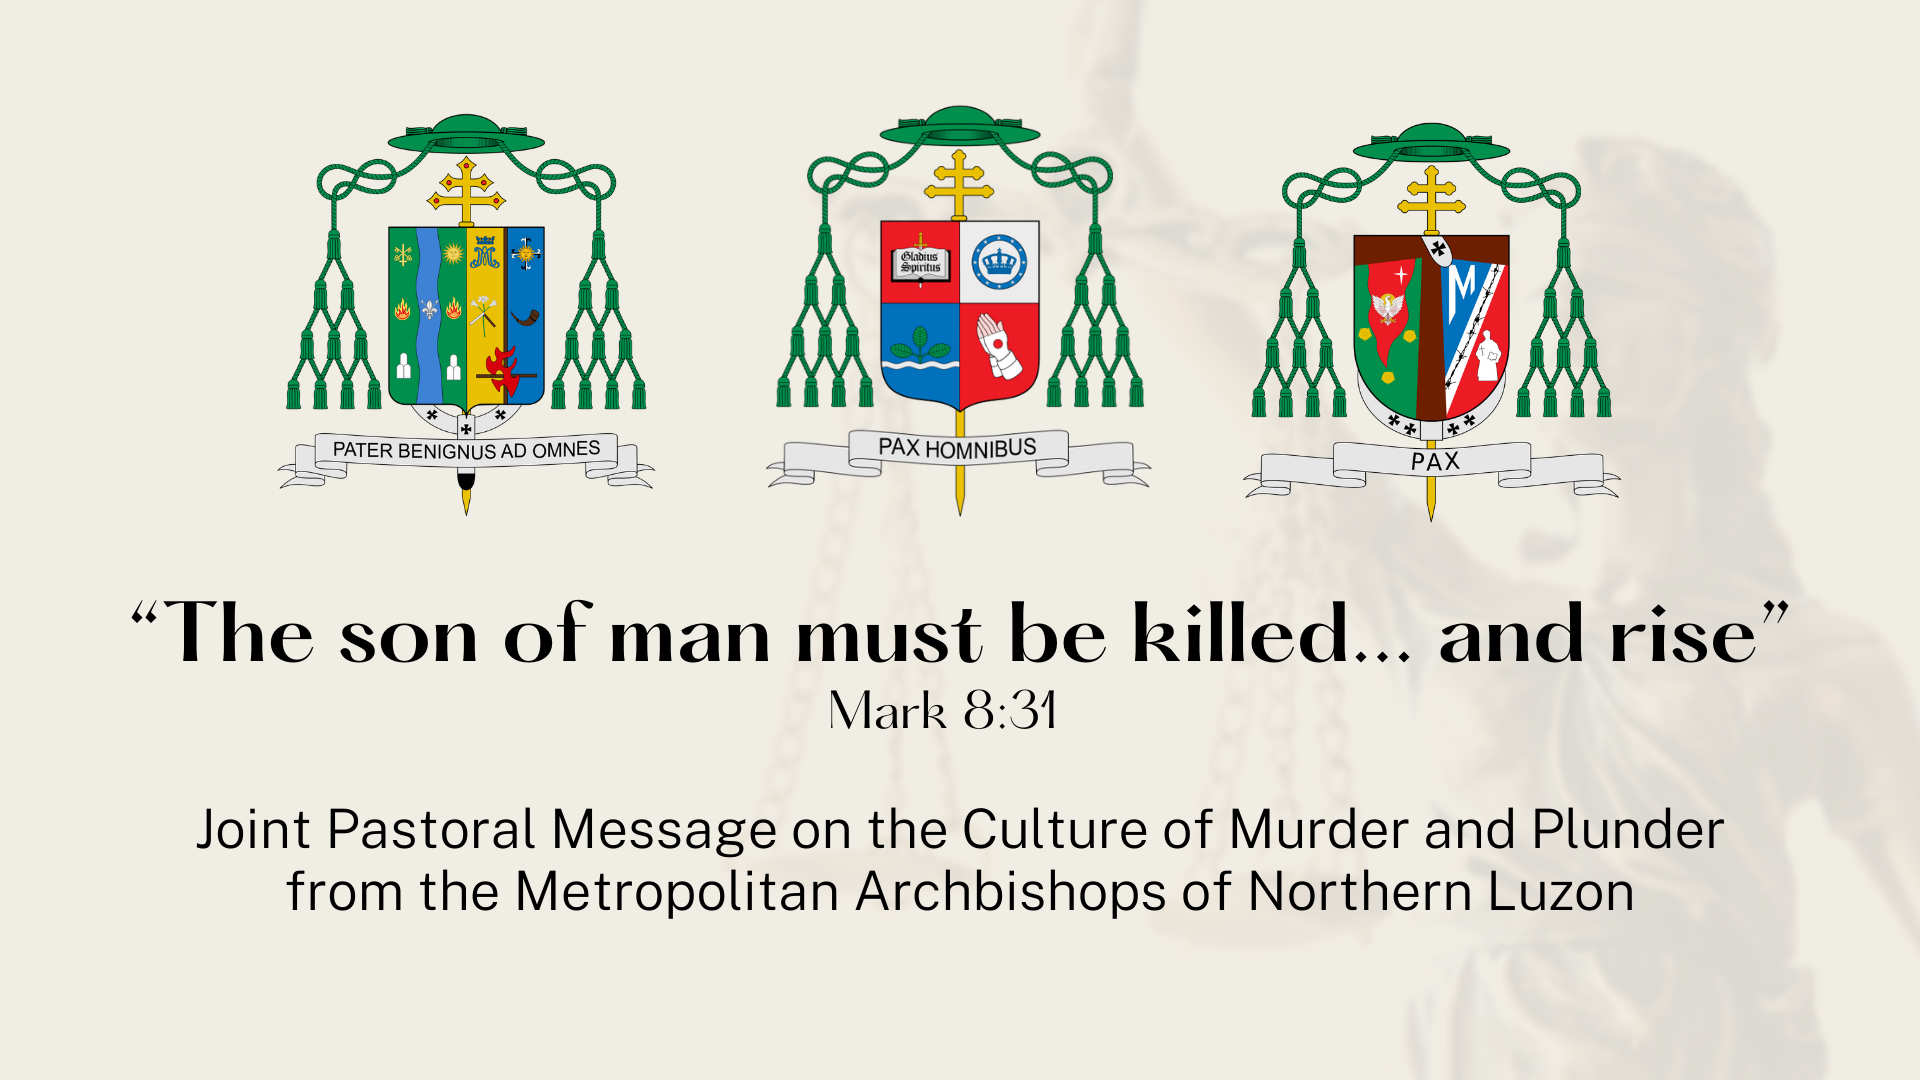 Joint Pastoral Message on the Culture of Murder and Plunder from the Metropolitan Archbishops of Northern Luzon